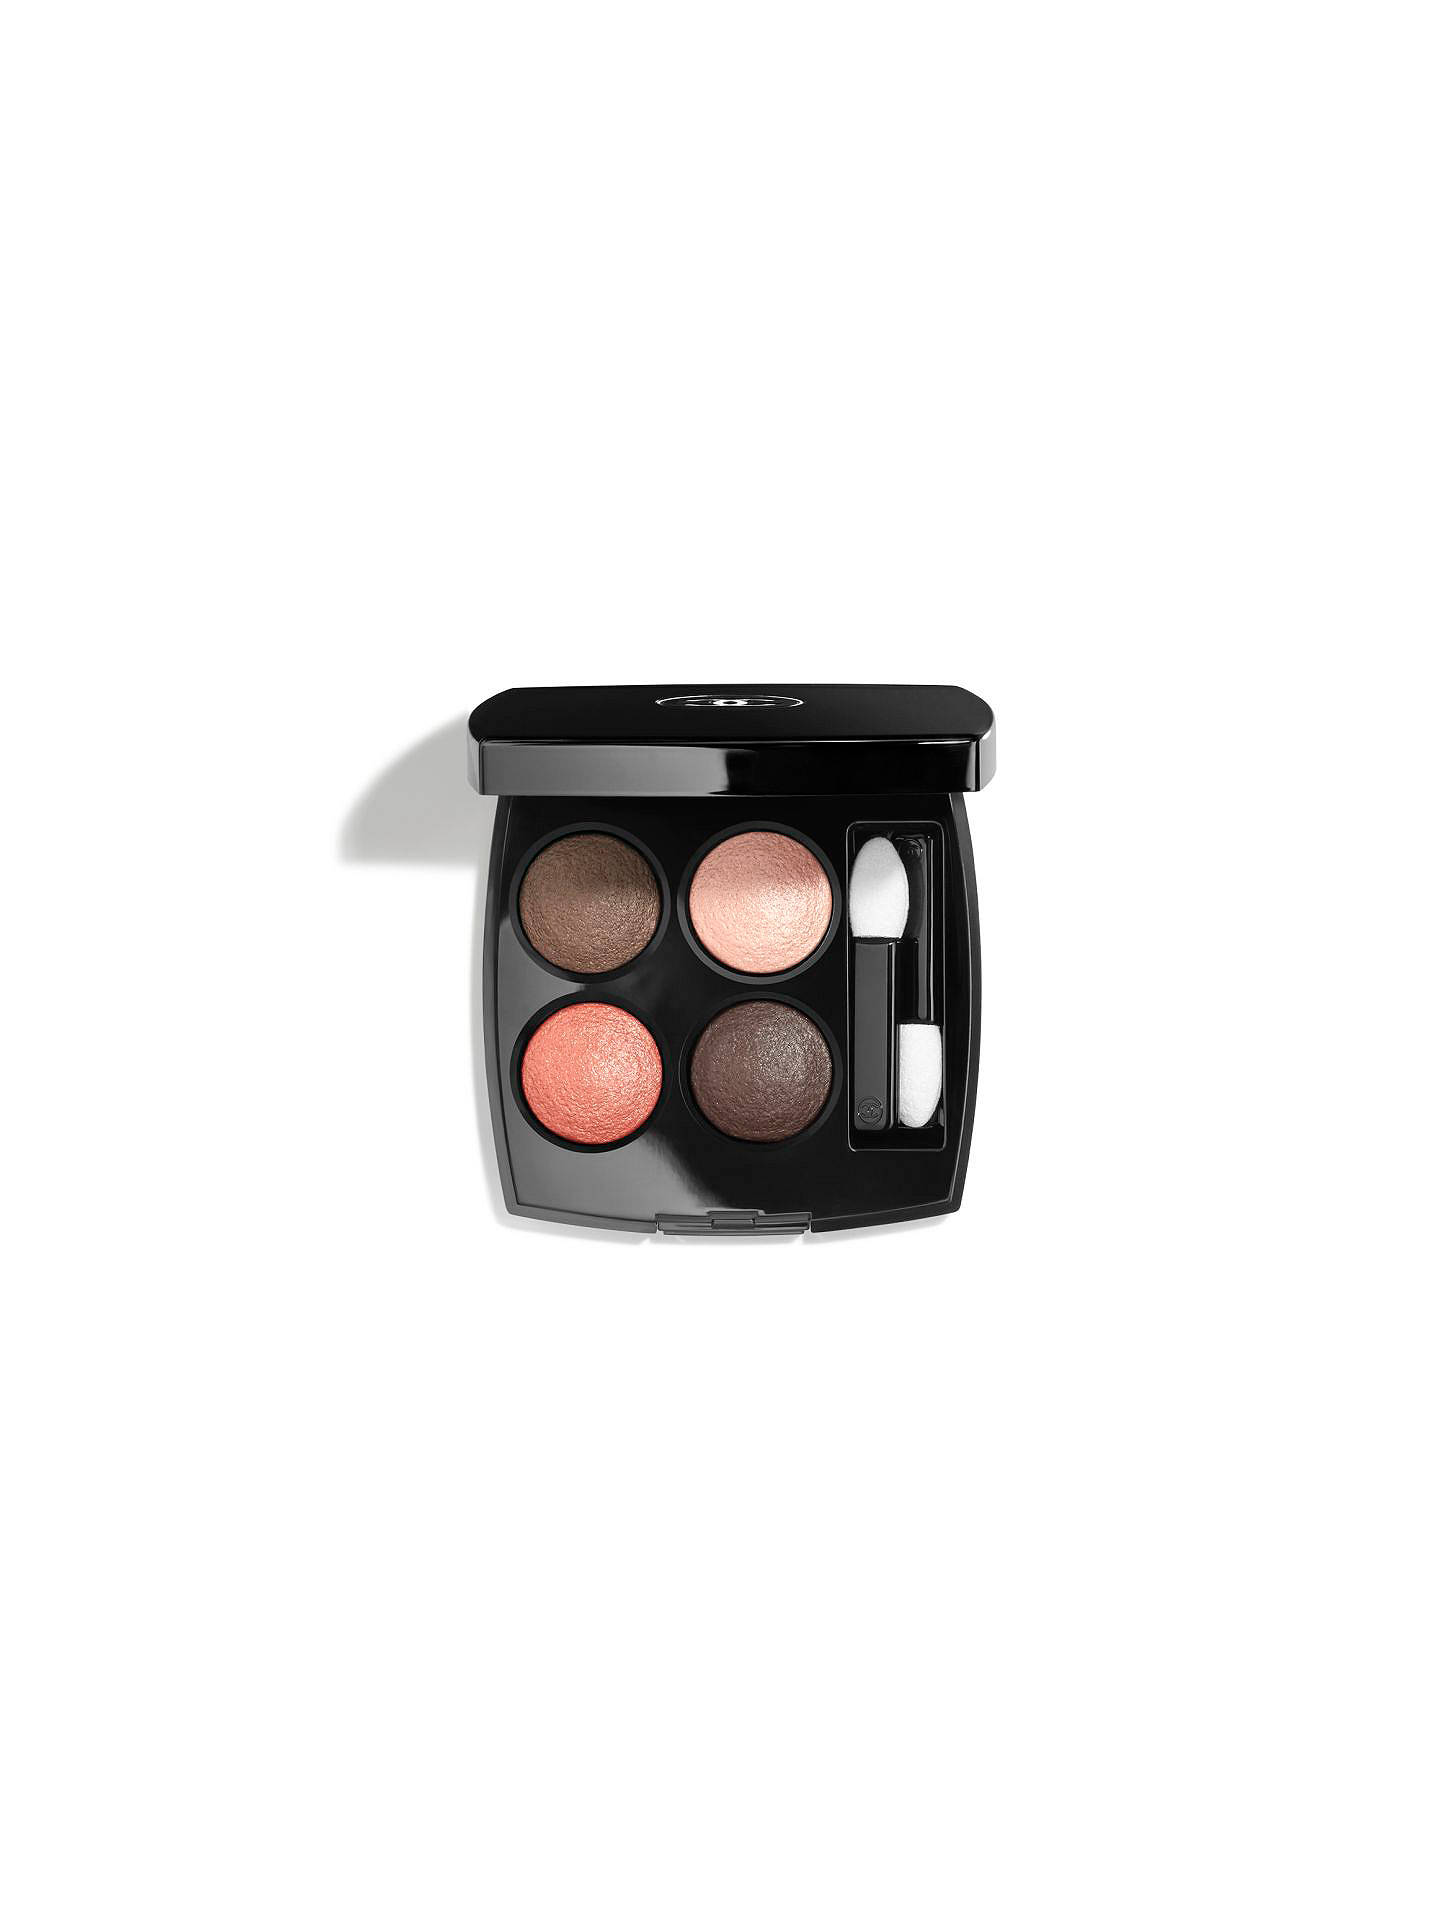 BuyCHANEL LES 4 OMBRES Multi-Effect Quadra Eyeshadow, 204 Tissé Vendôme Online at johnlewis.com